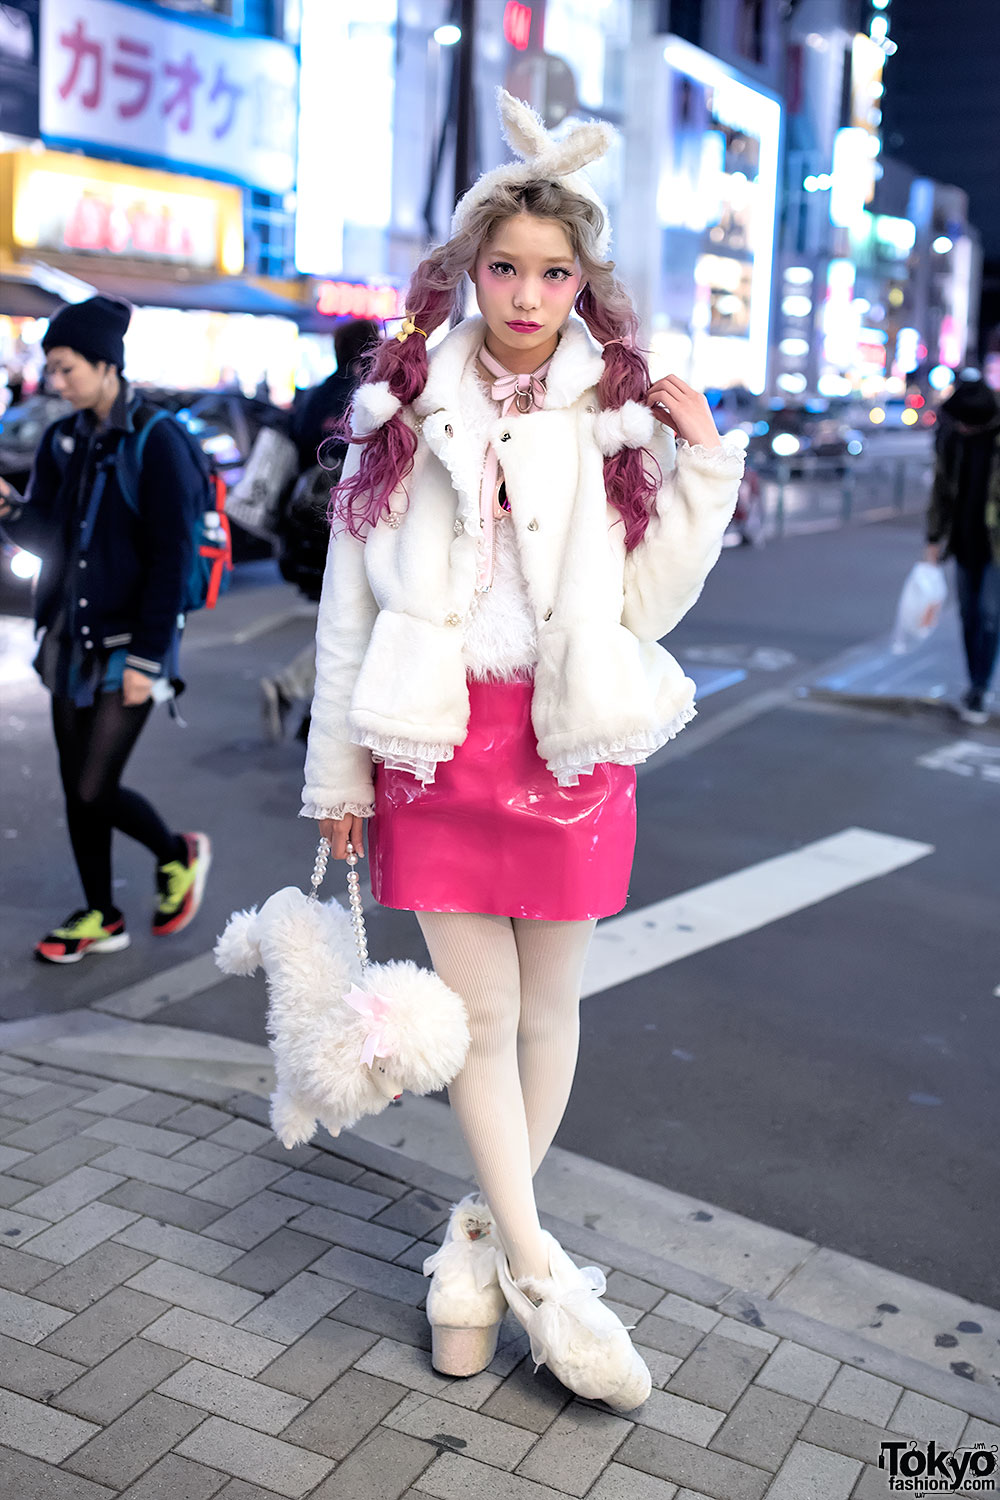 Swankiss Producer's Pink Twin Tails, Furry Jacket, Vinyl Skirt ...